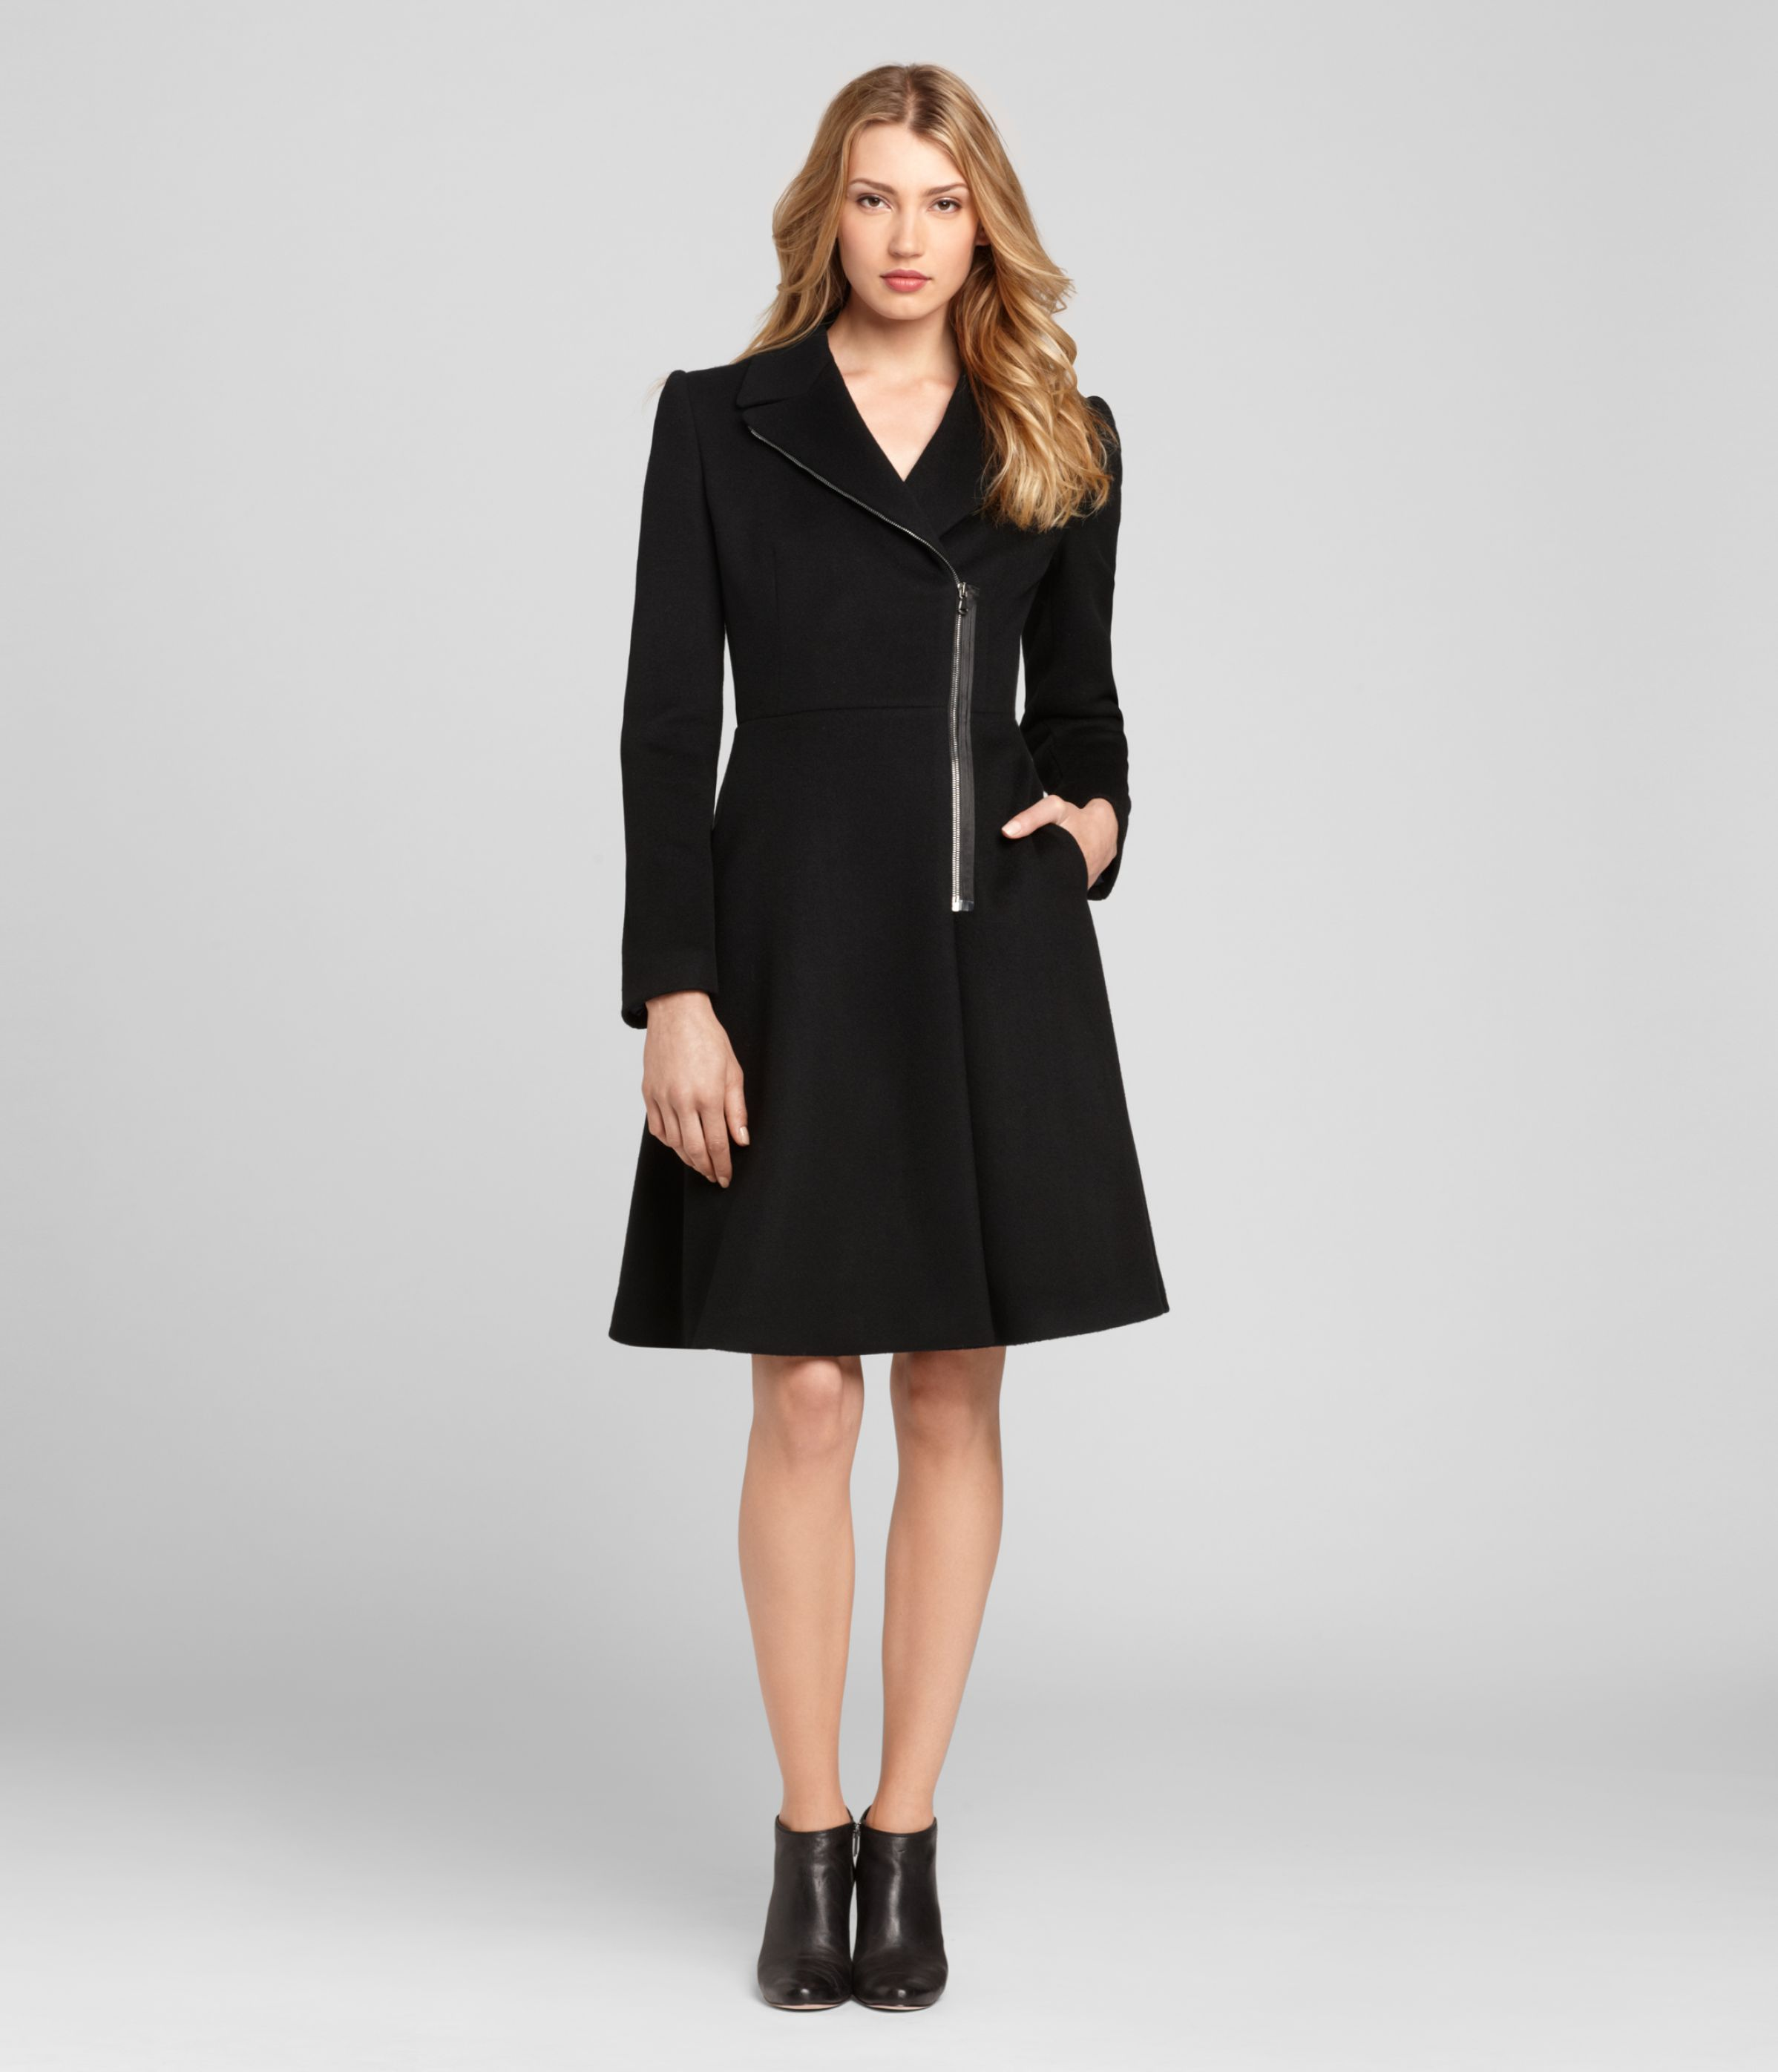 I don't know which I love more: the ladylike shape, the ever-so-slightly puffed shoulders or the off-center zippered front. All that in all black will work with pretty much everything you wear from late October to mid-March: Women's 'Aliza' coat by Elie Tahari